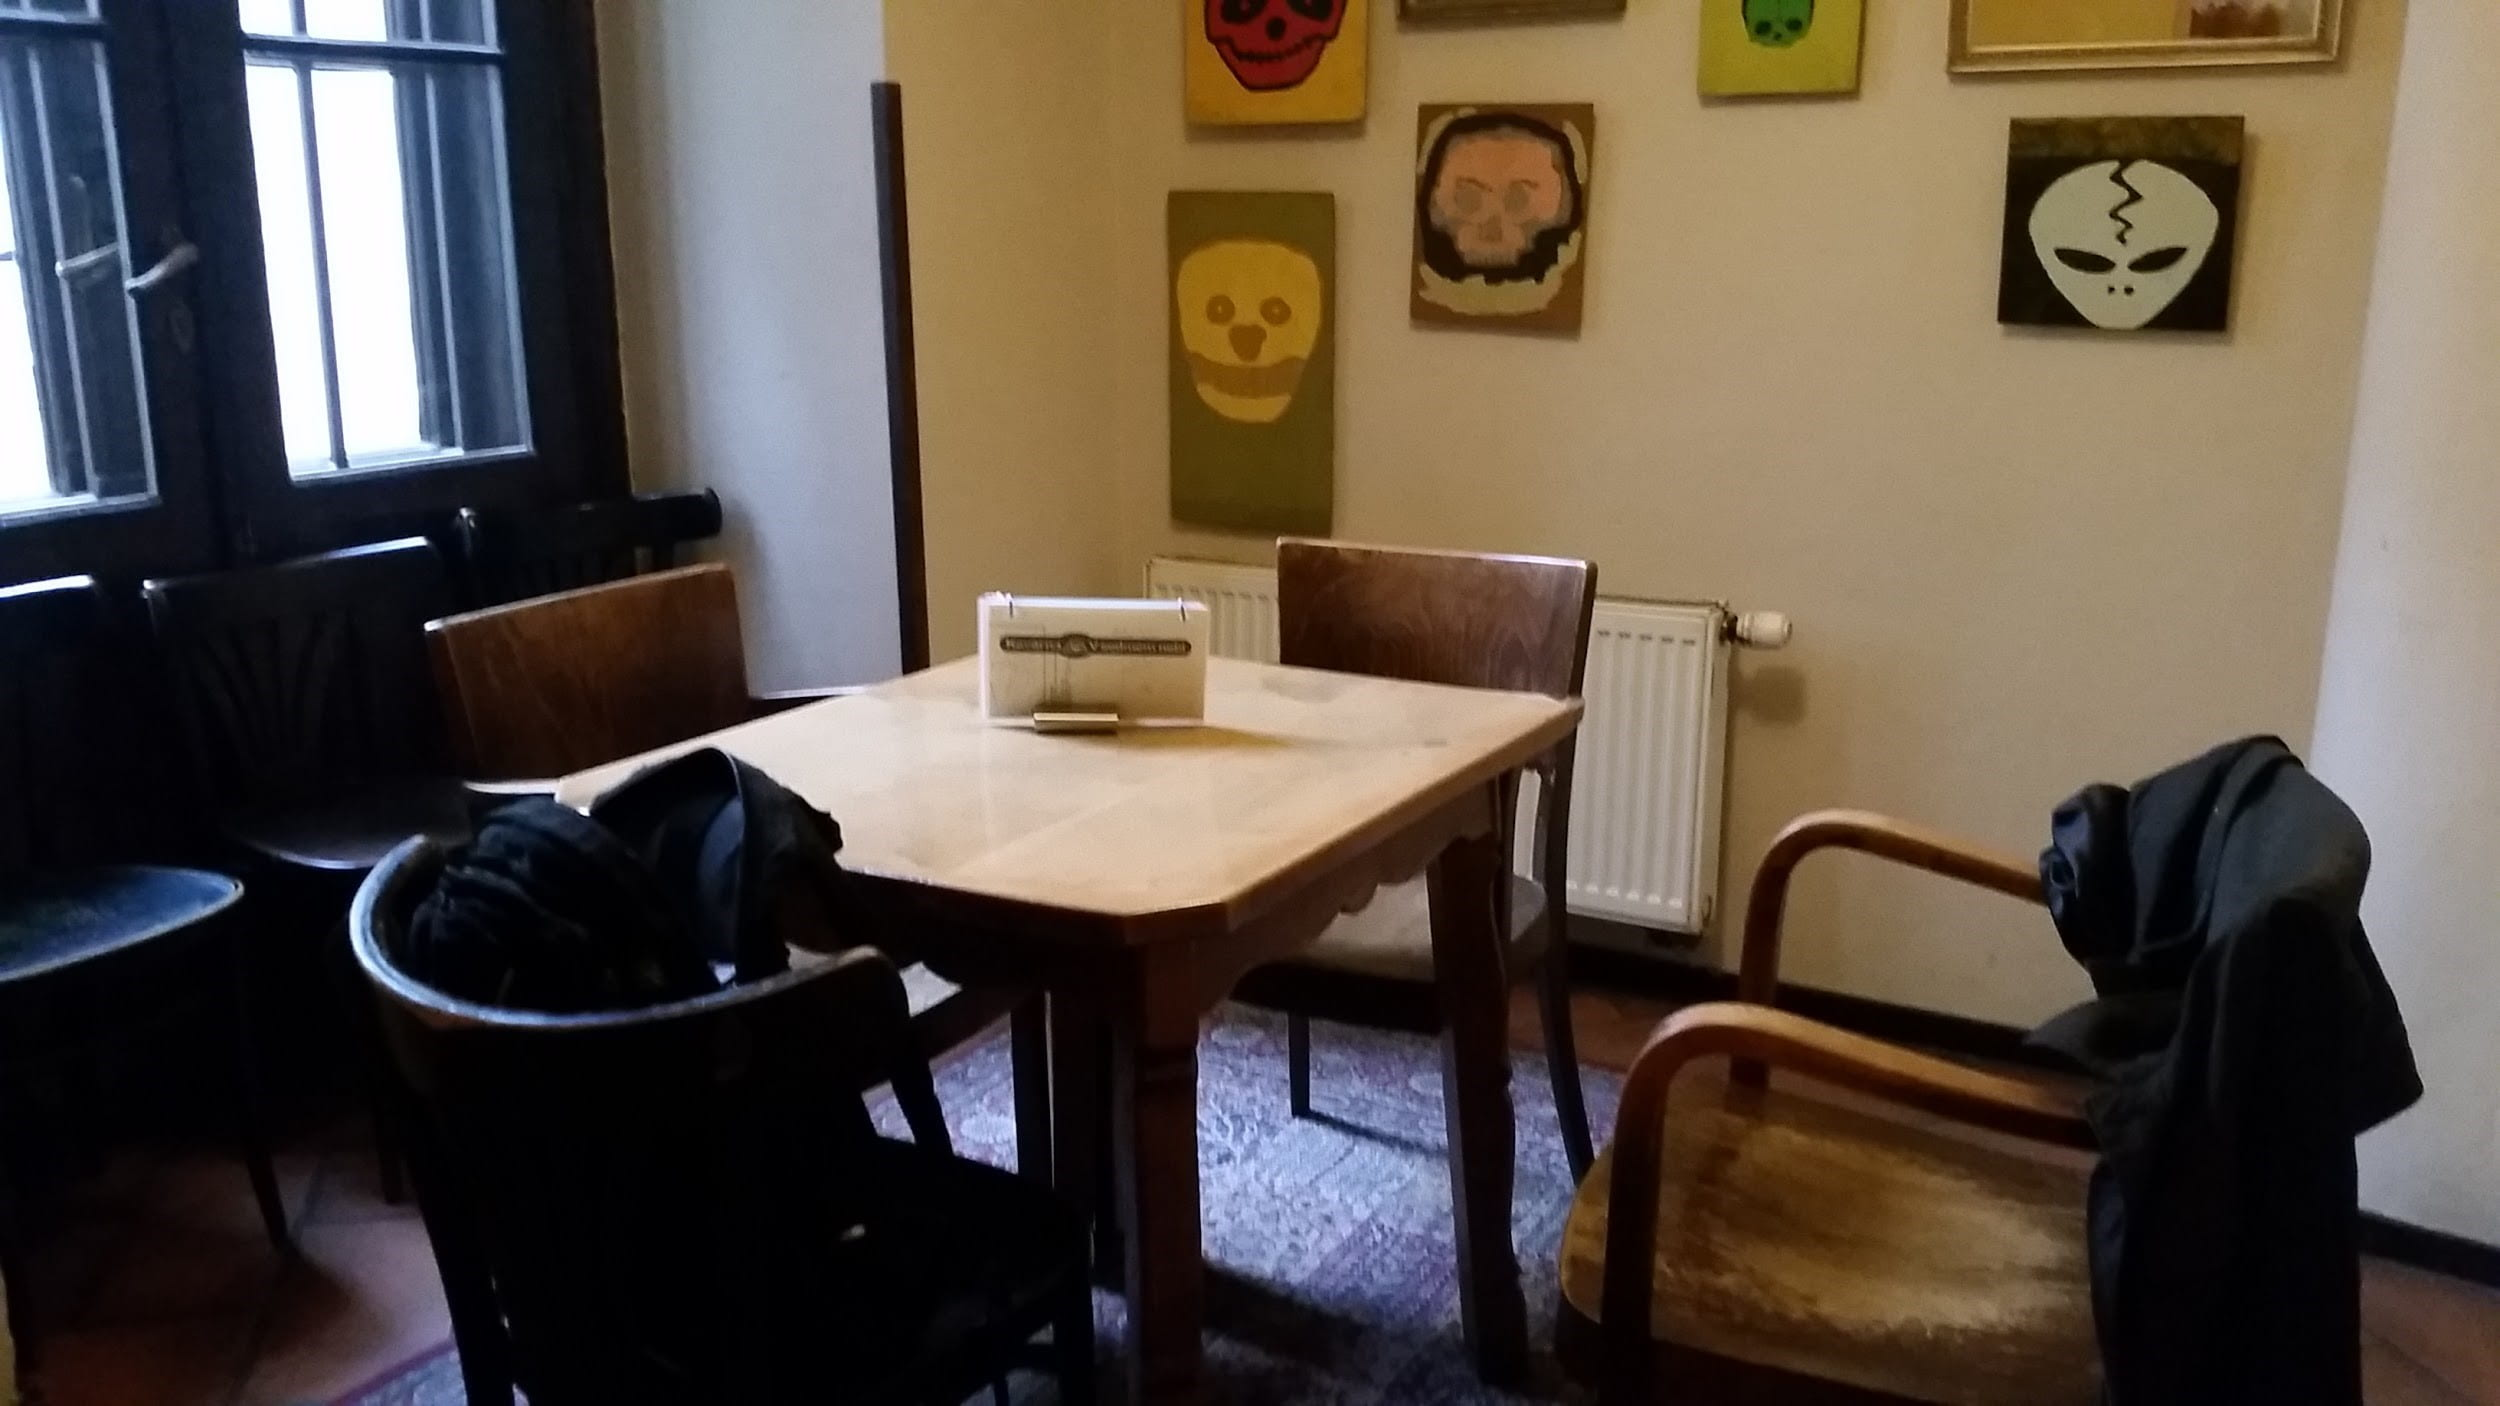 Back room in a small cafe with table and chairs